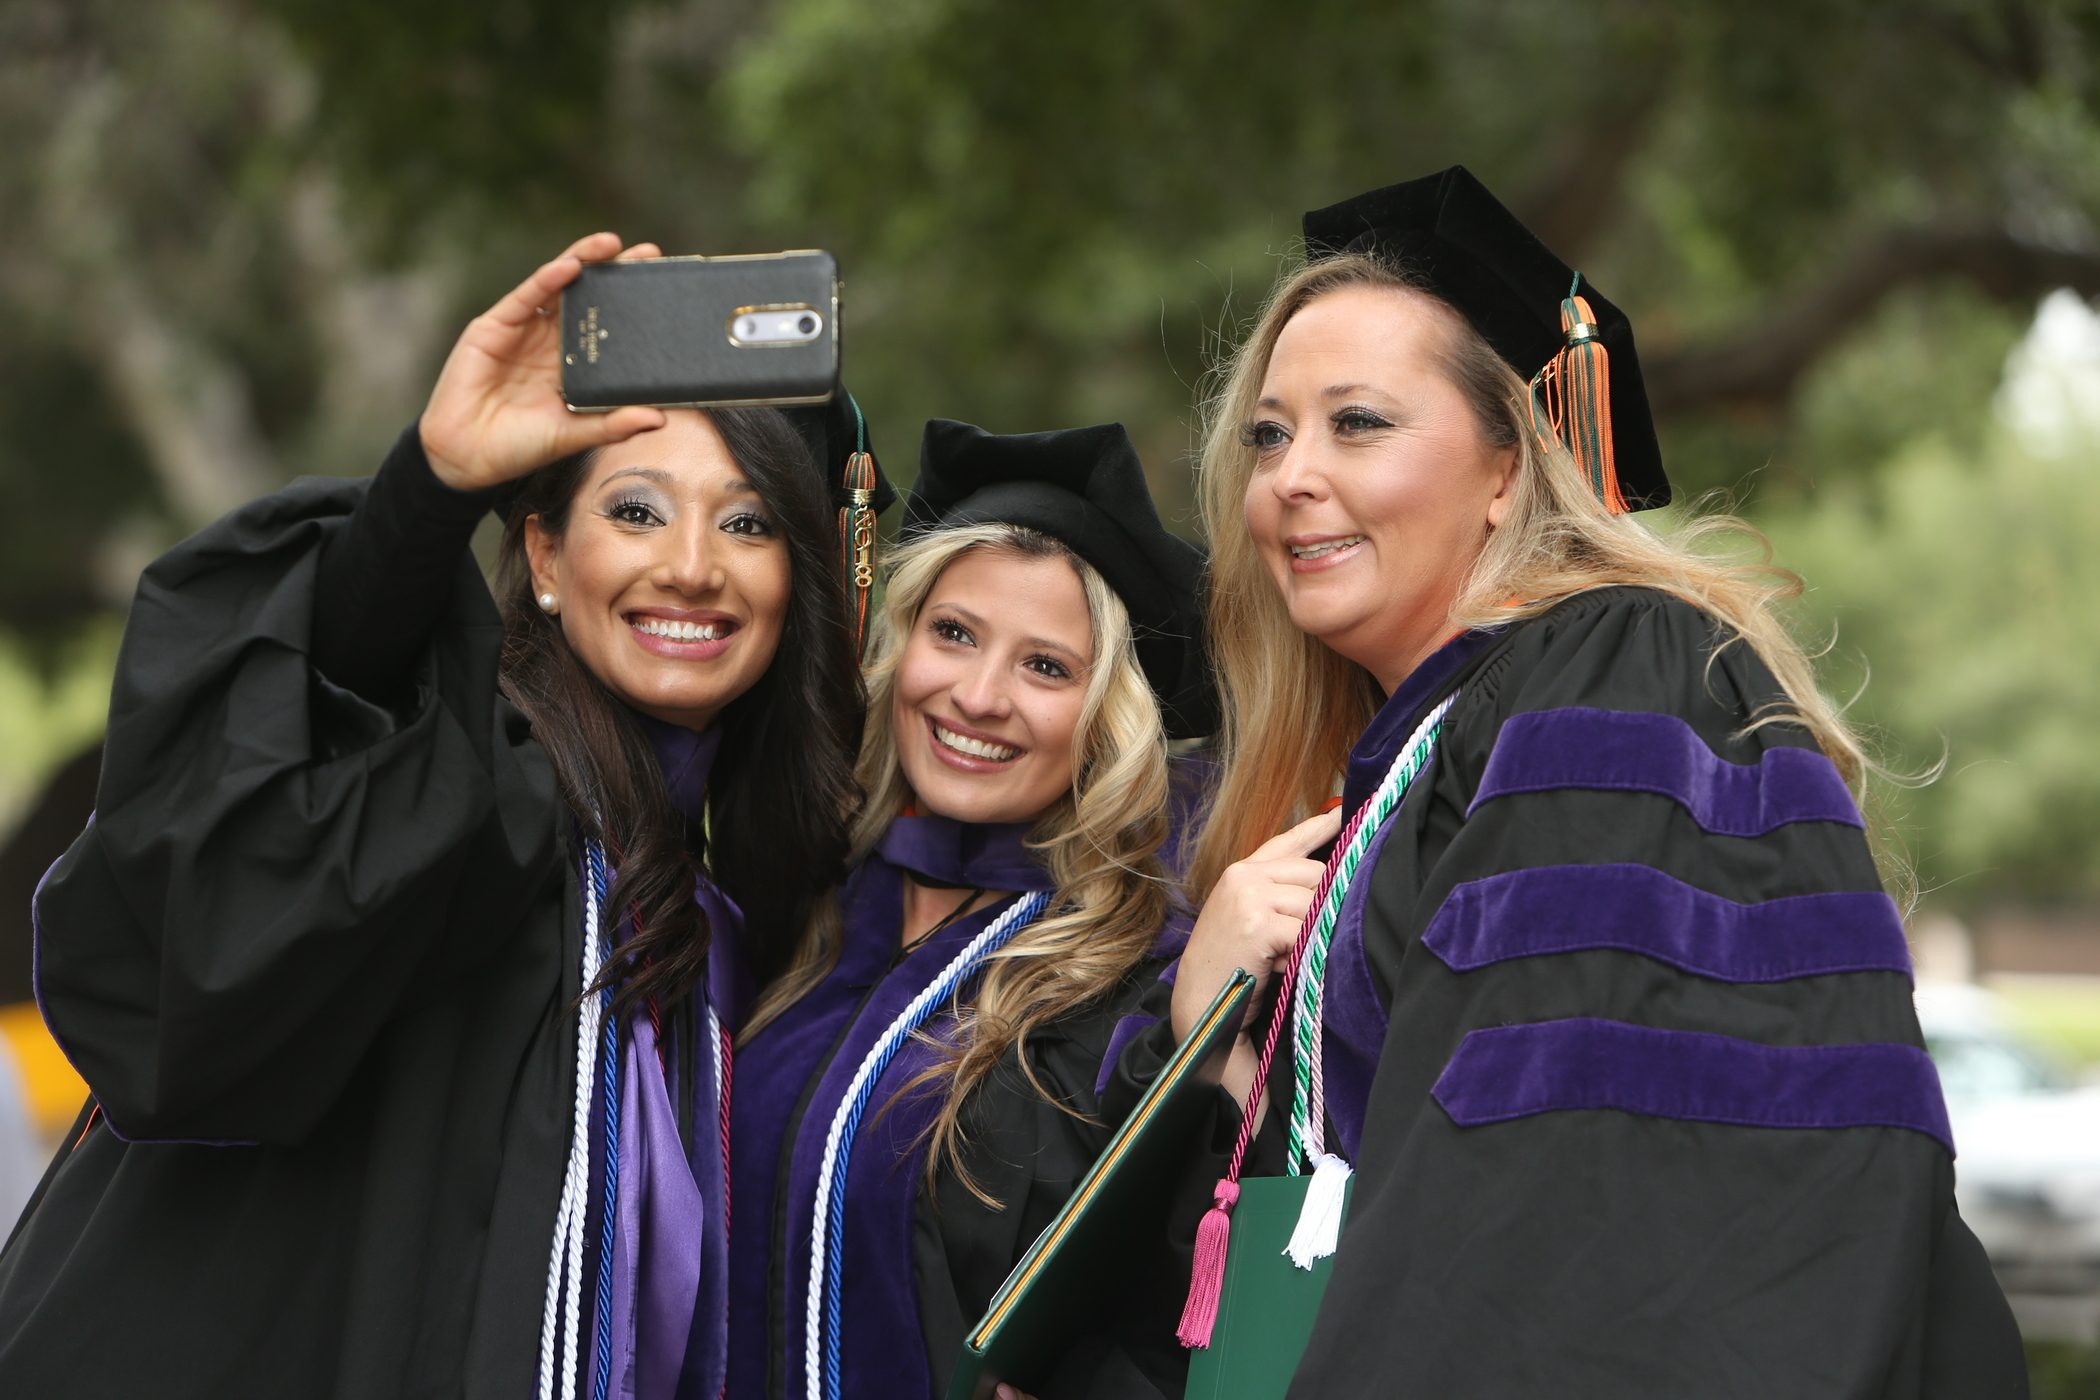 Students take photos at the 2018 College of Law Commencement ceremony.